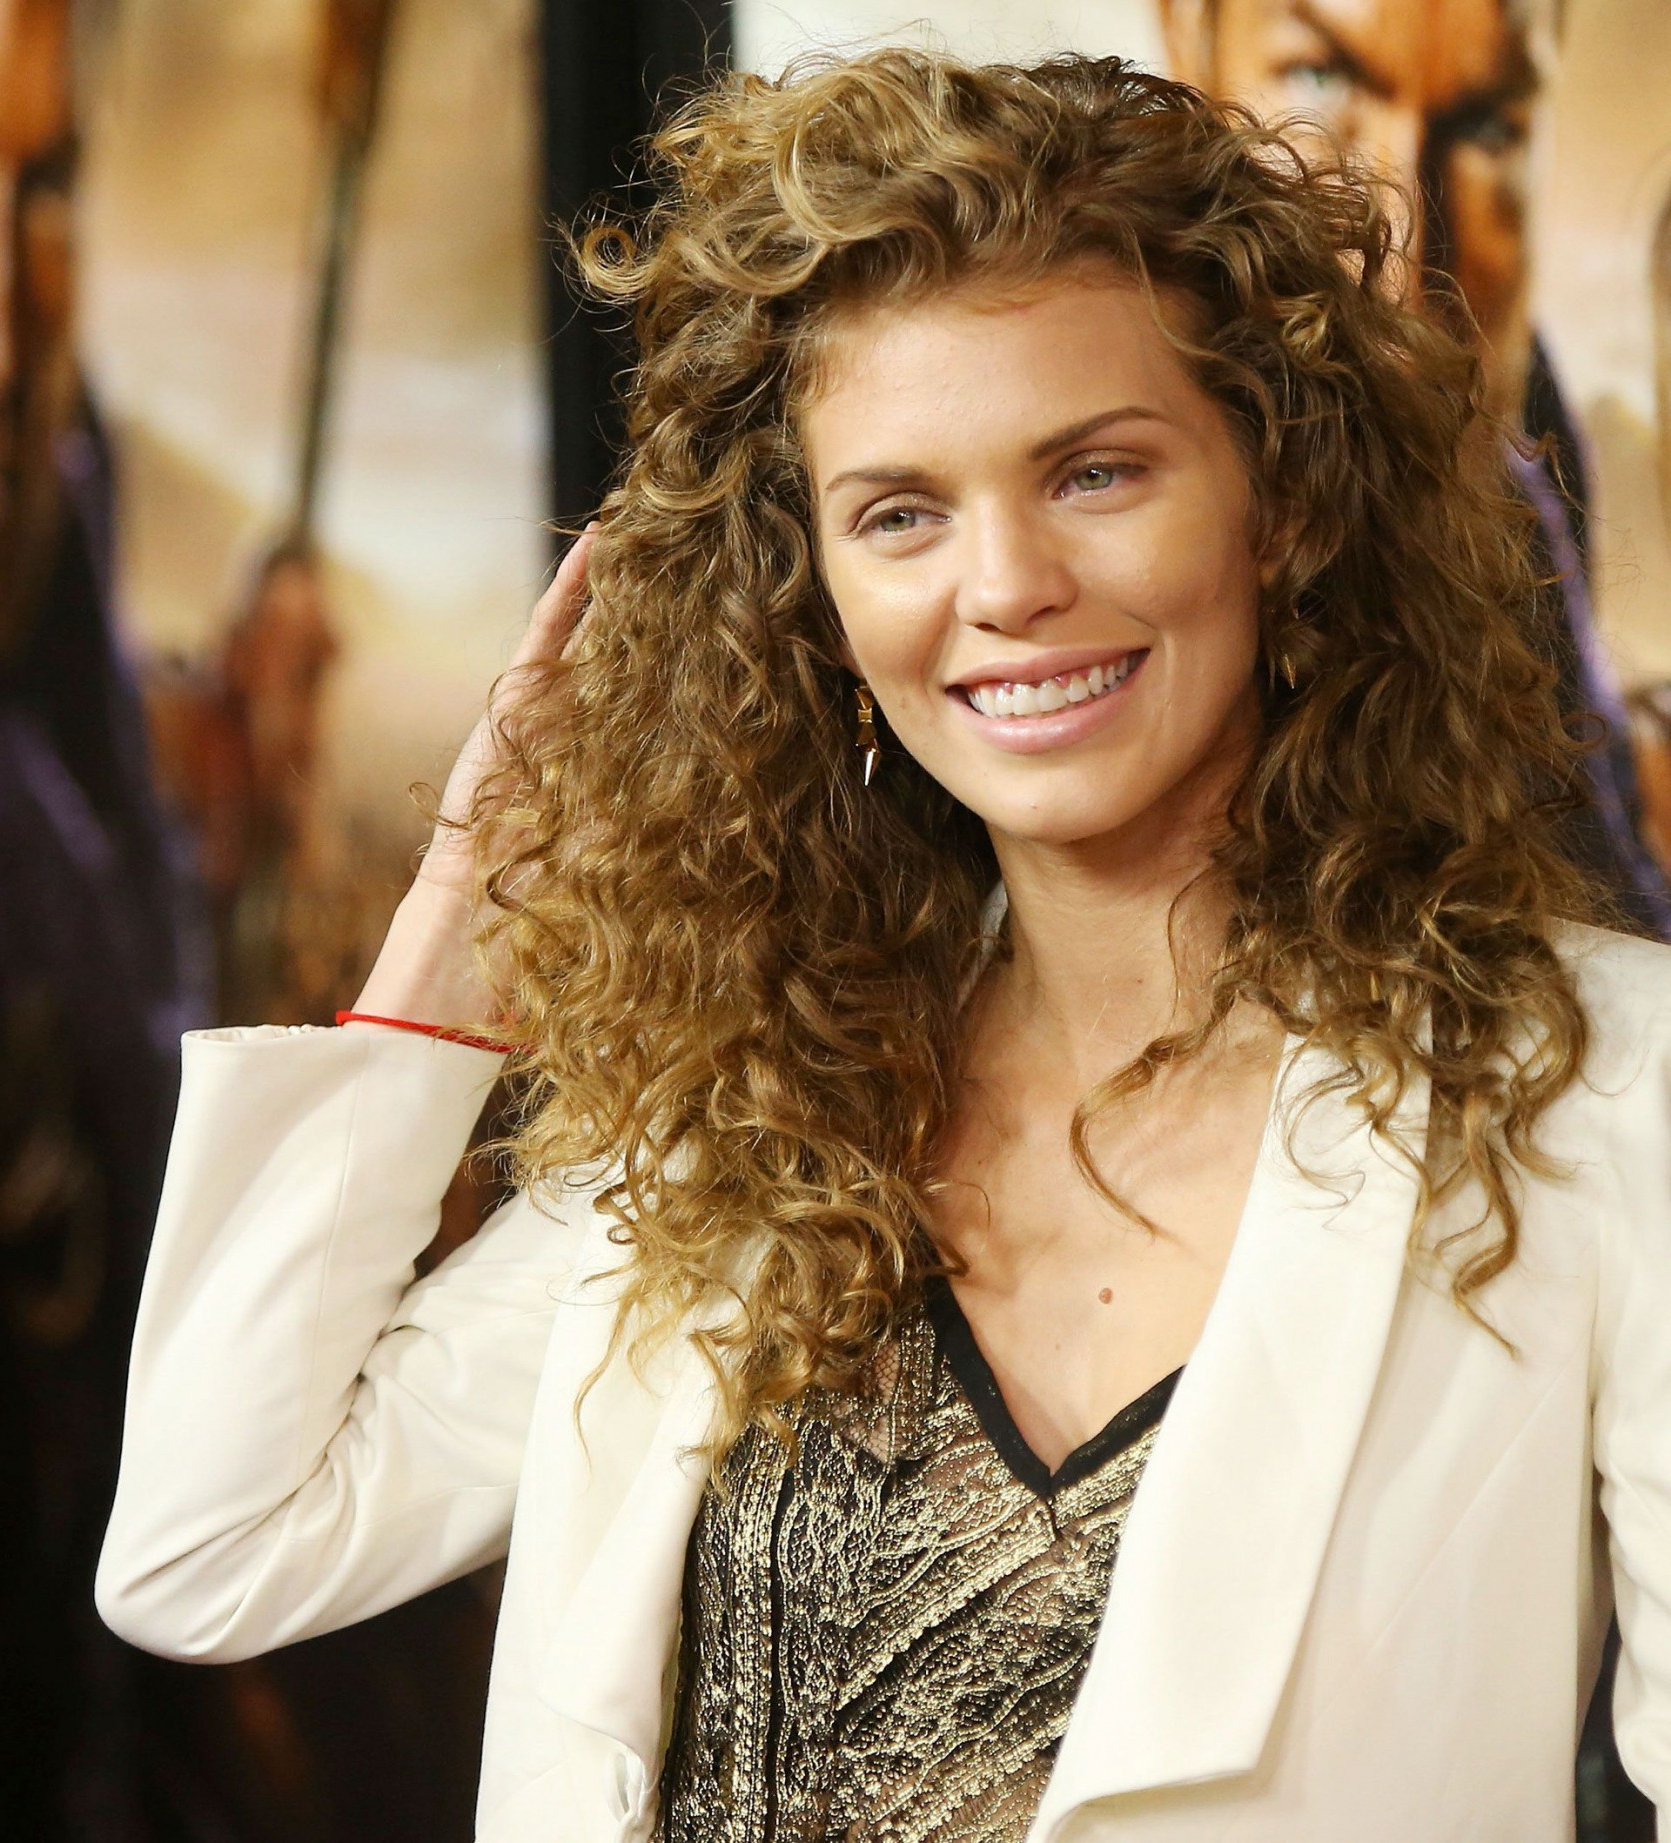 Haircuts For Curly Hair Over 40   Hairstyles And Haircuts Ideas For With Regard To Short Curly Hairstyles For Over (View 25 of 25)